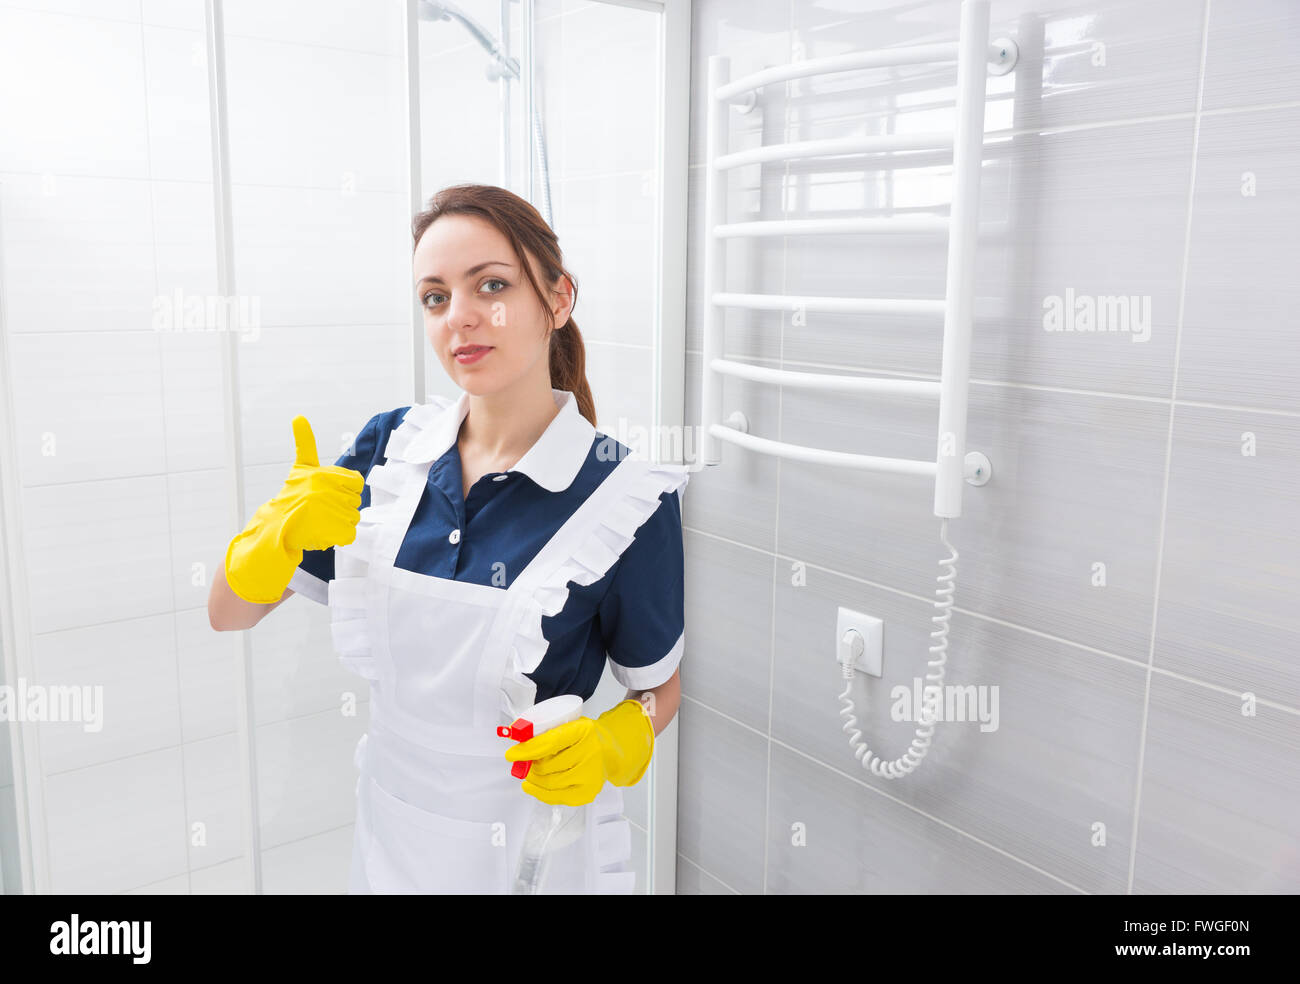 Confident young female domestic worker standing in blue dress and white apron with thumbs up gesture while holding spray bottle next to shower stall in bathroom. Stock Photo